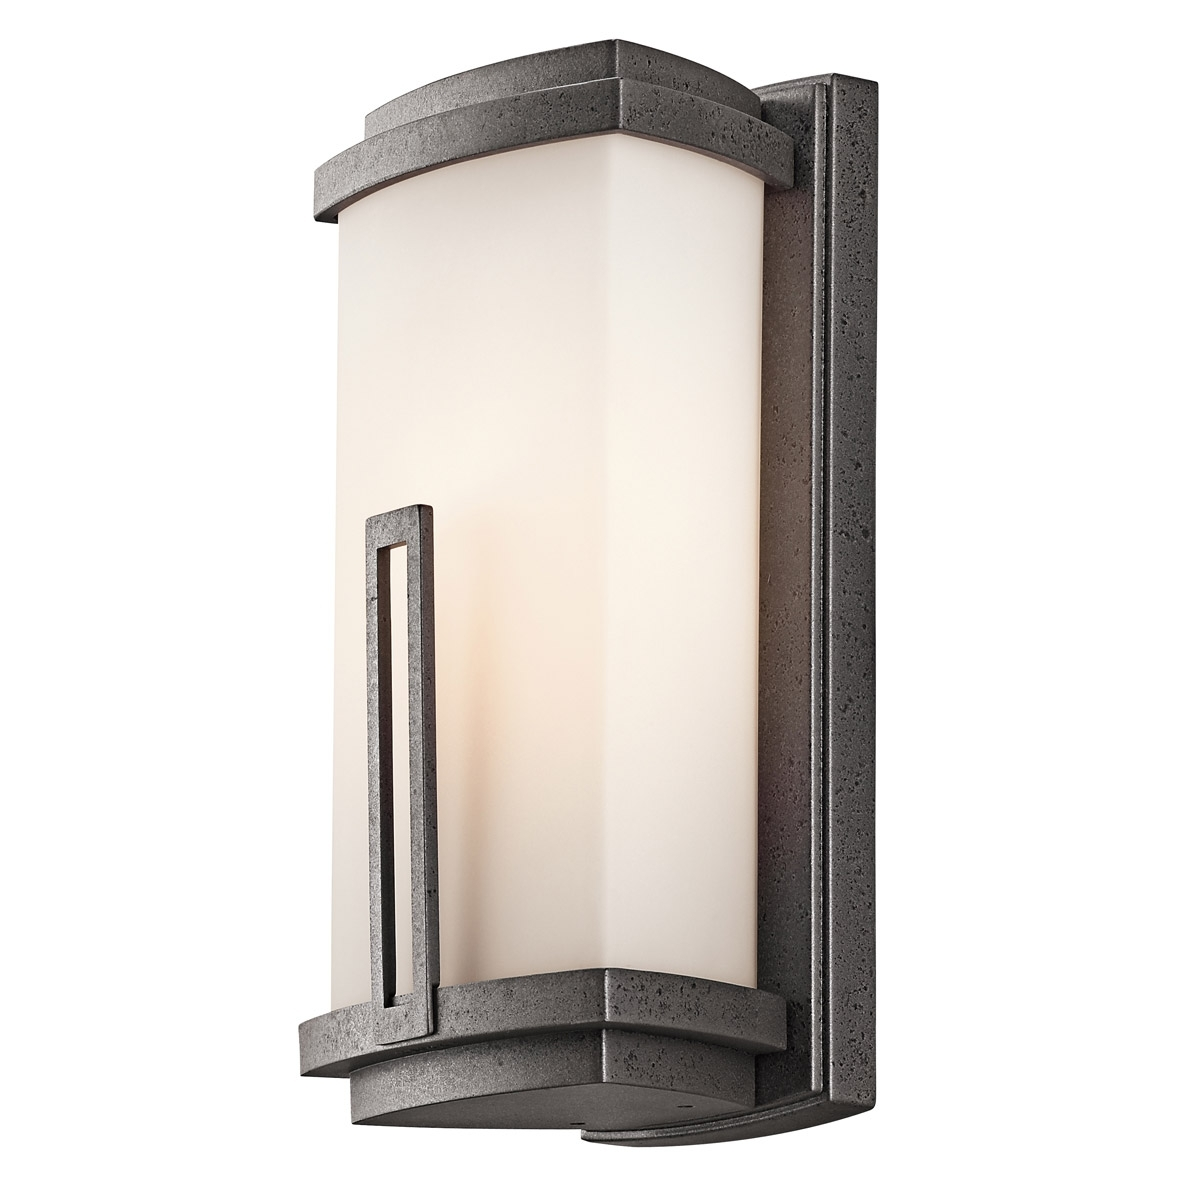 Fashionable Kichler Lighting Outdoor Wall Lanterns Intended For 49110Avi Leeds Outdoor Wall Sconce (View 3 of 20)